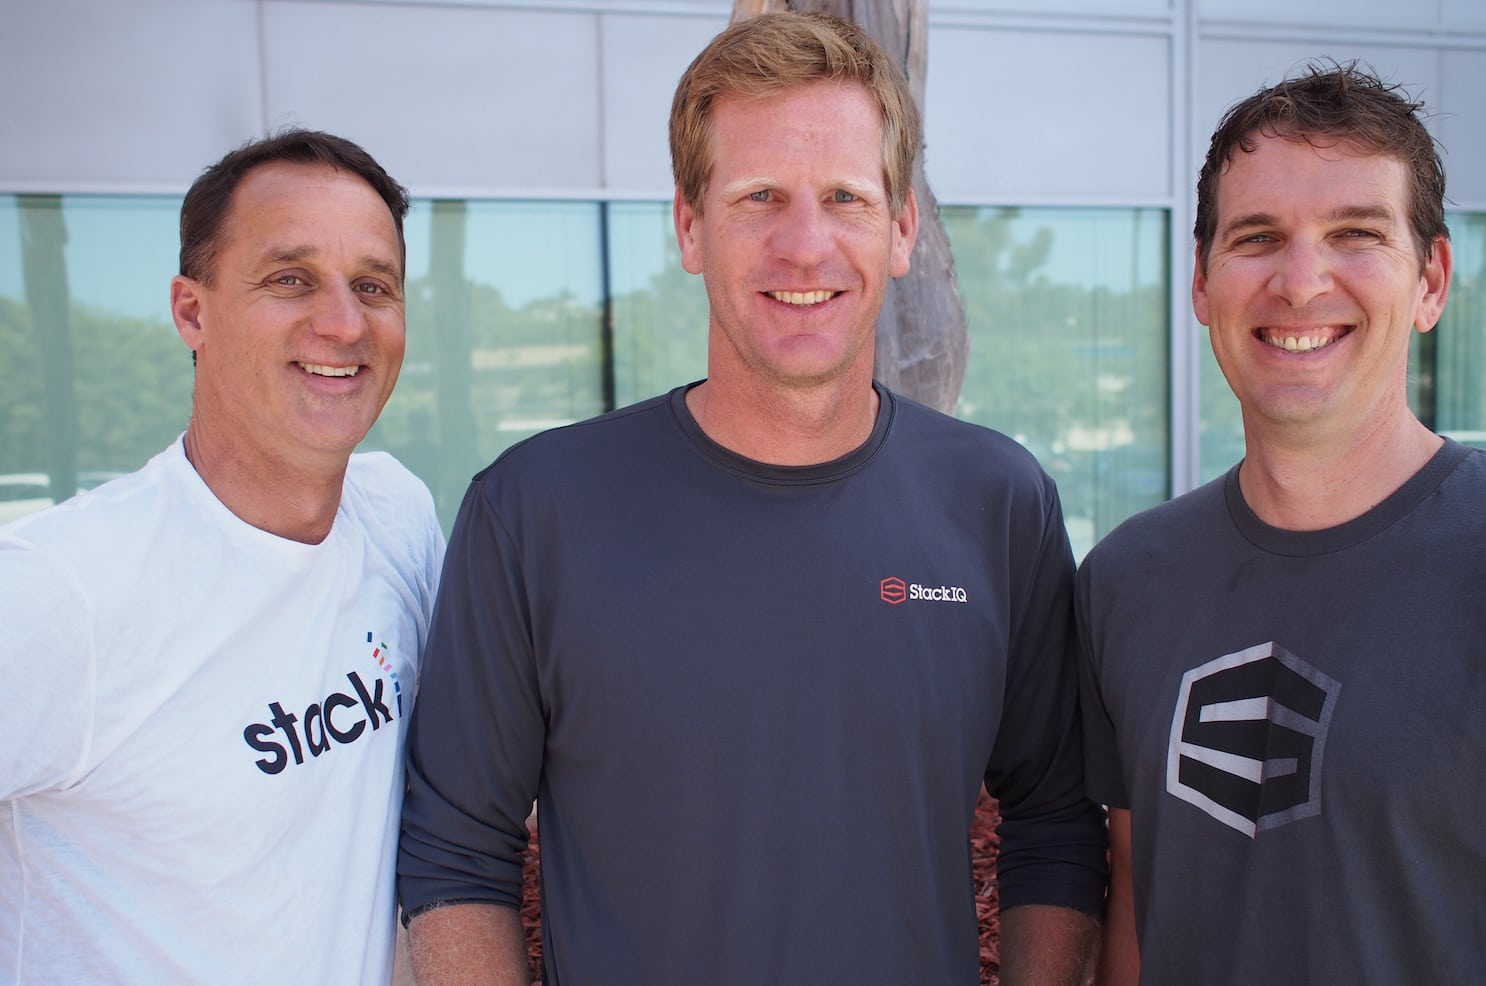 Teradata Acquires San Diego's StackIQ to Strengthen Cloud Business